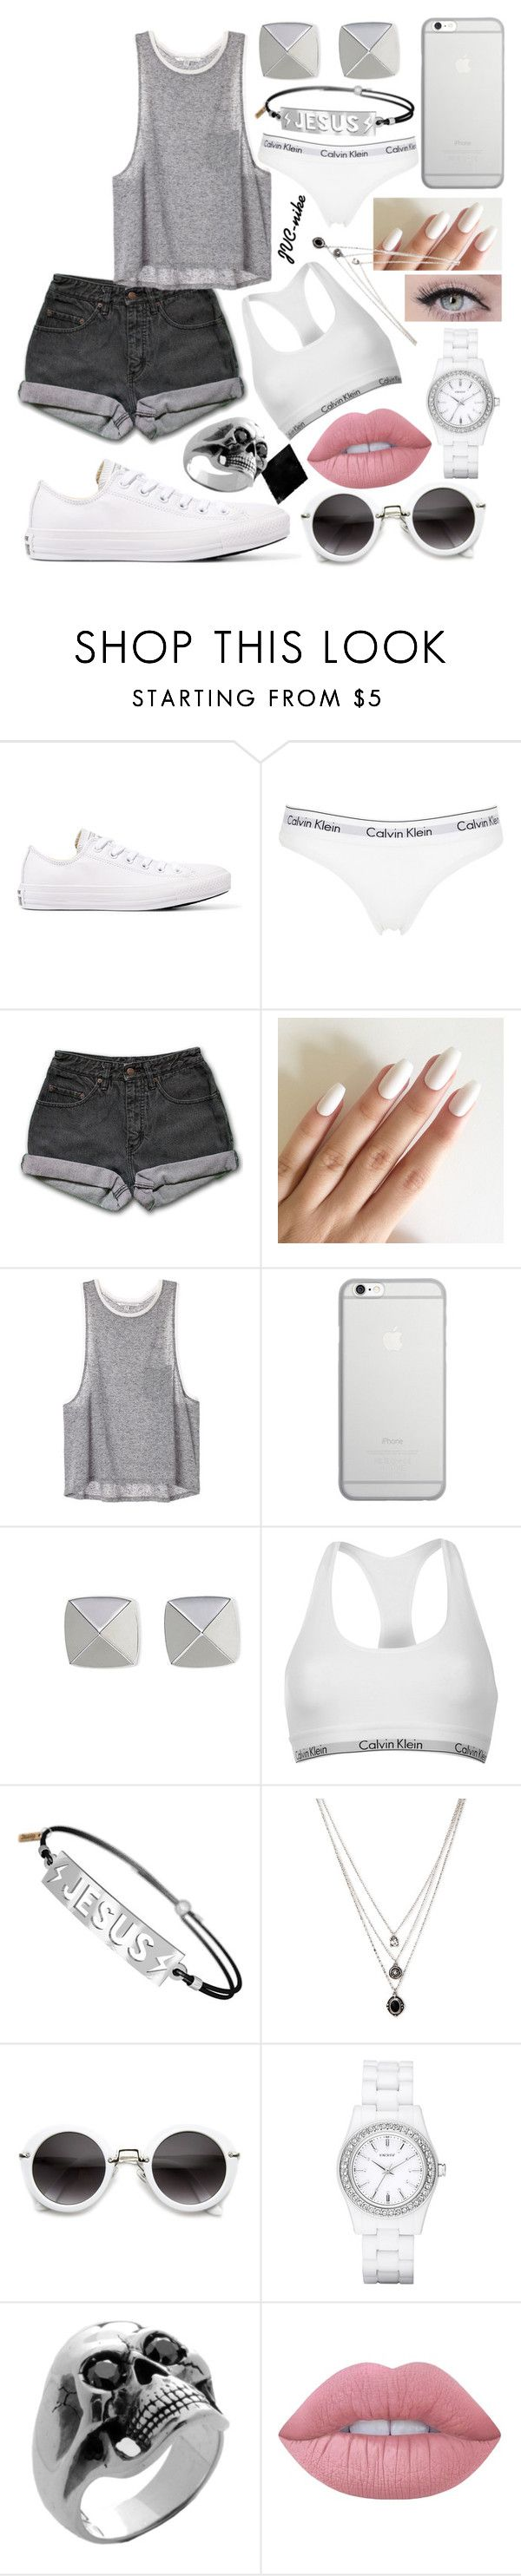 """Chainsaw - Nick Jonas"" by jvc-nike ❤ liked on Polyvore featuring Converse, Calvin Klein Underwear, PèPè, Native Union, Vince Camuto, Calvin Klein, Forever 21, DKNY, Manuel Bozzi and Lime Crime"